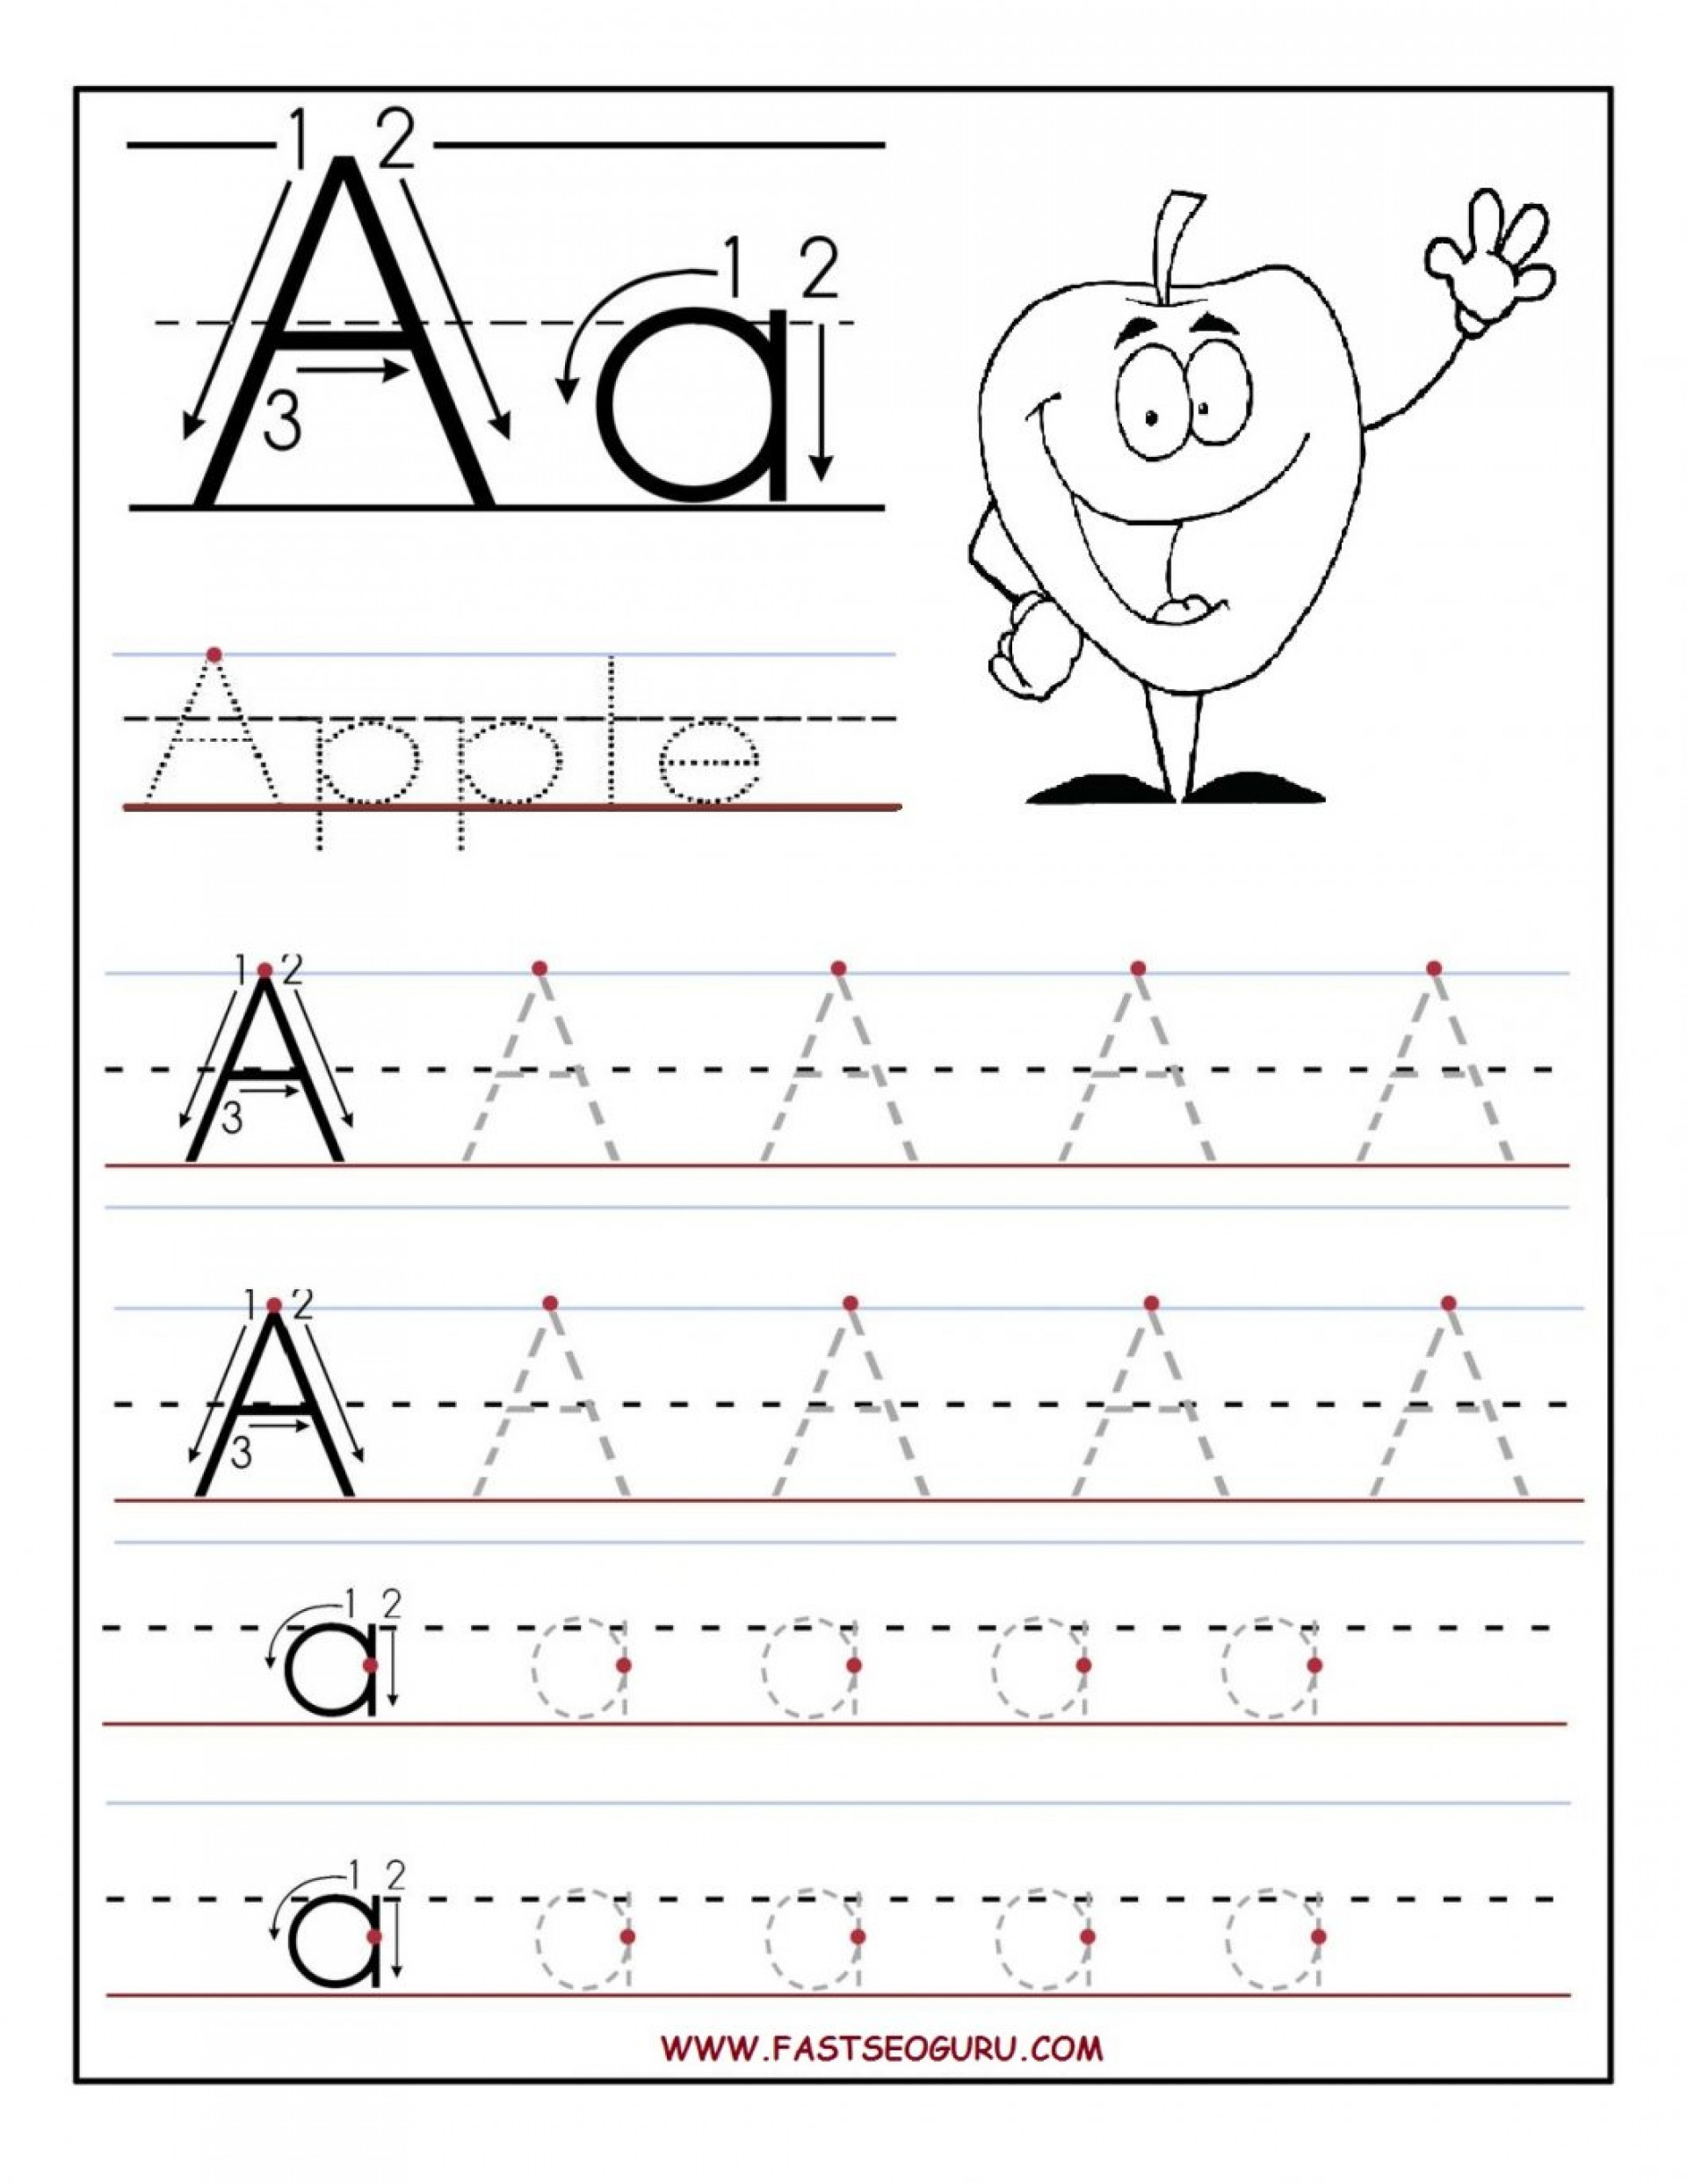 Reading Worksheets Free Printing For Kindergarten Worksheet pertaining to Kindergarten Letter Tracing